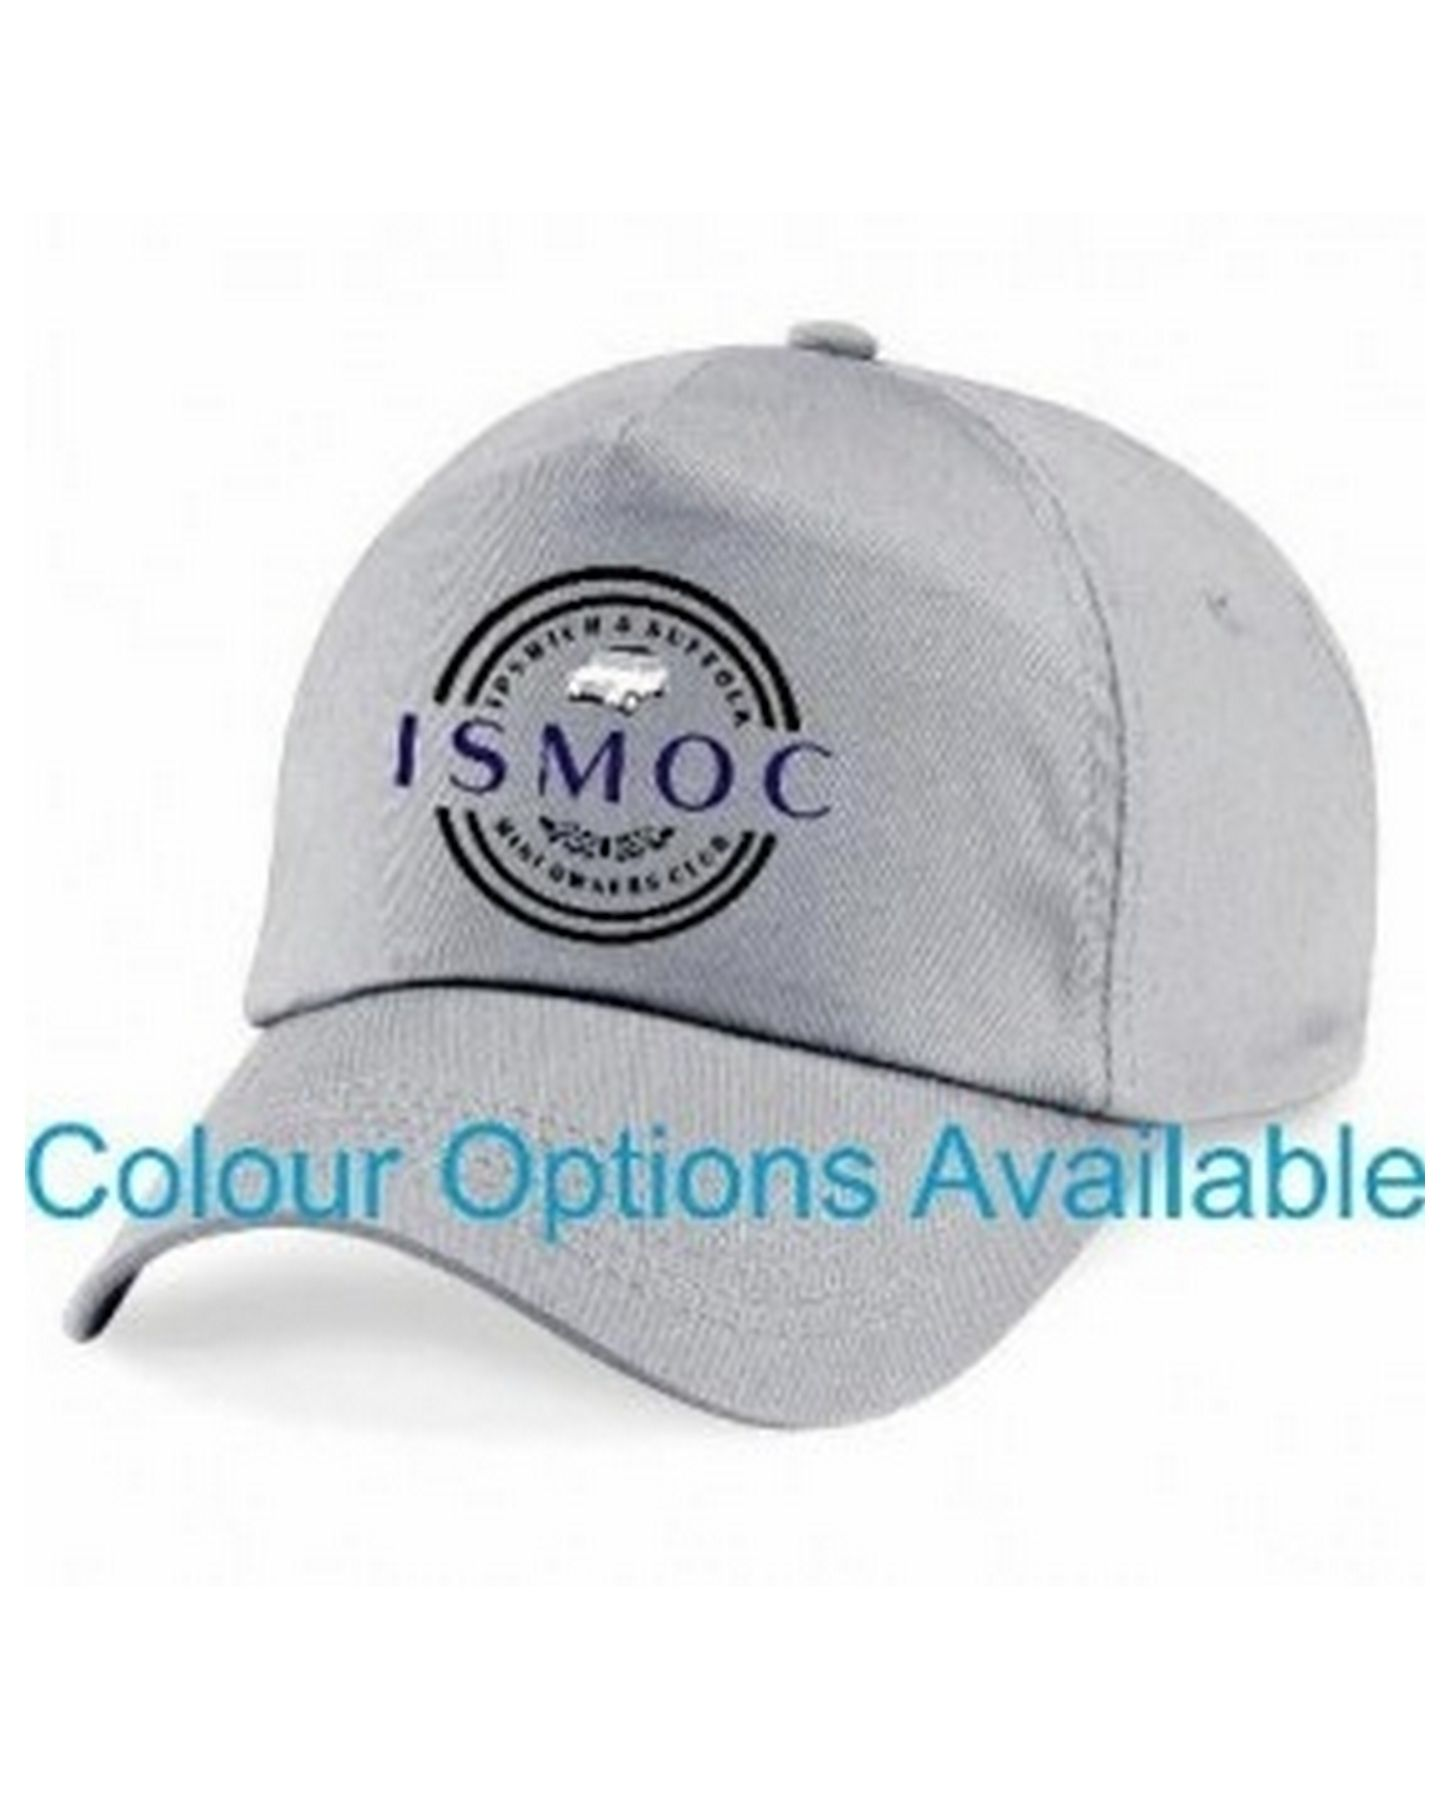 ISMOC – Original 5 Panel Cap